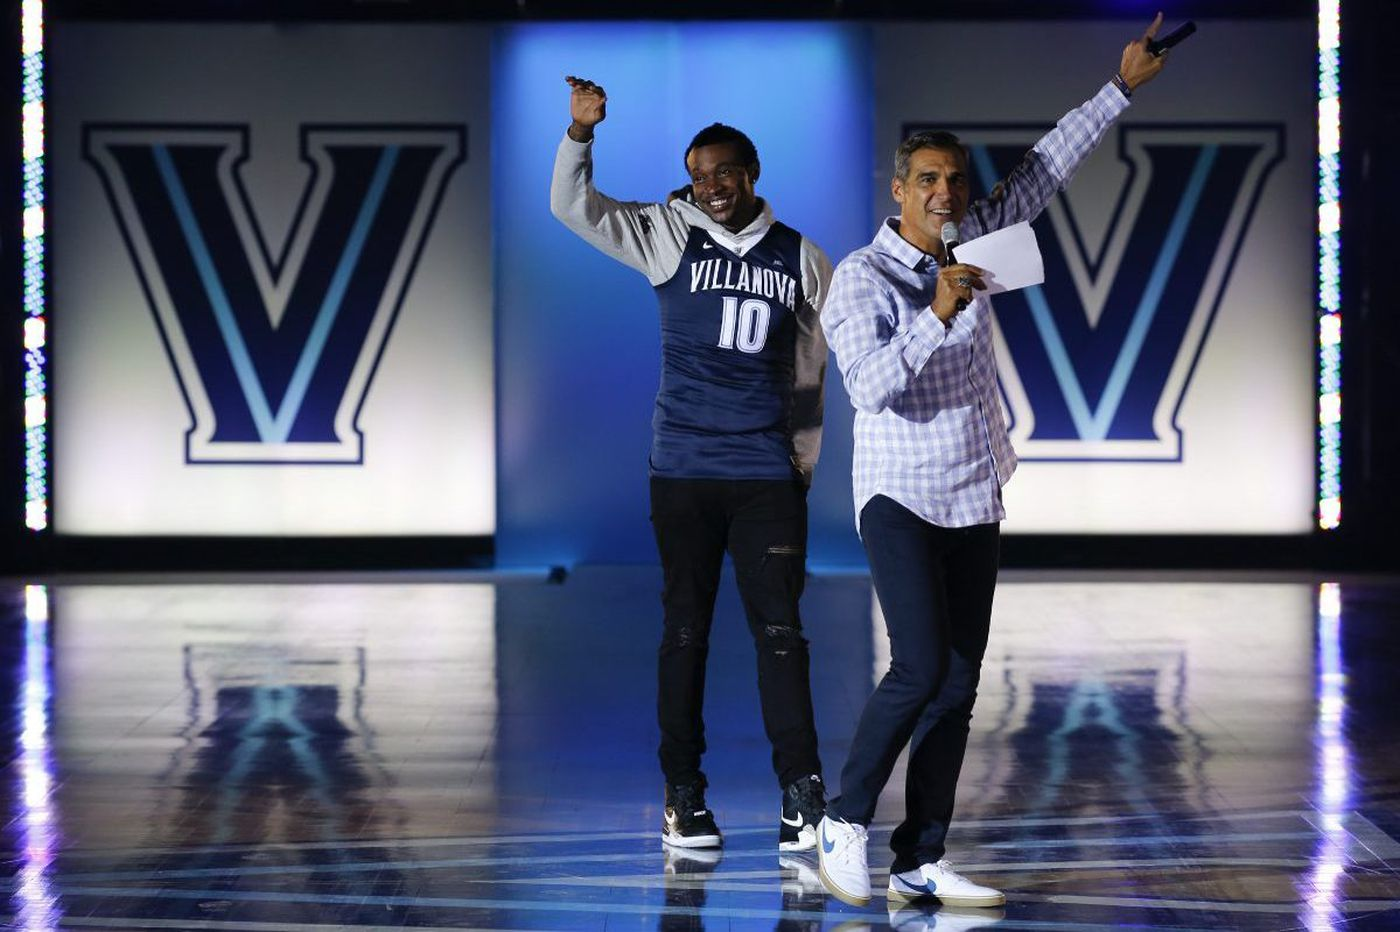 Villanova's Finneran Pavilion reopens after a $65 million renovation